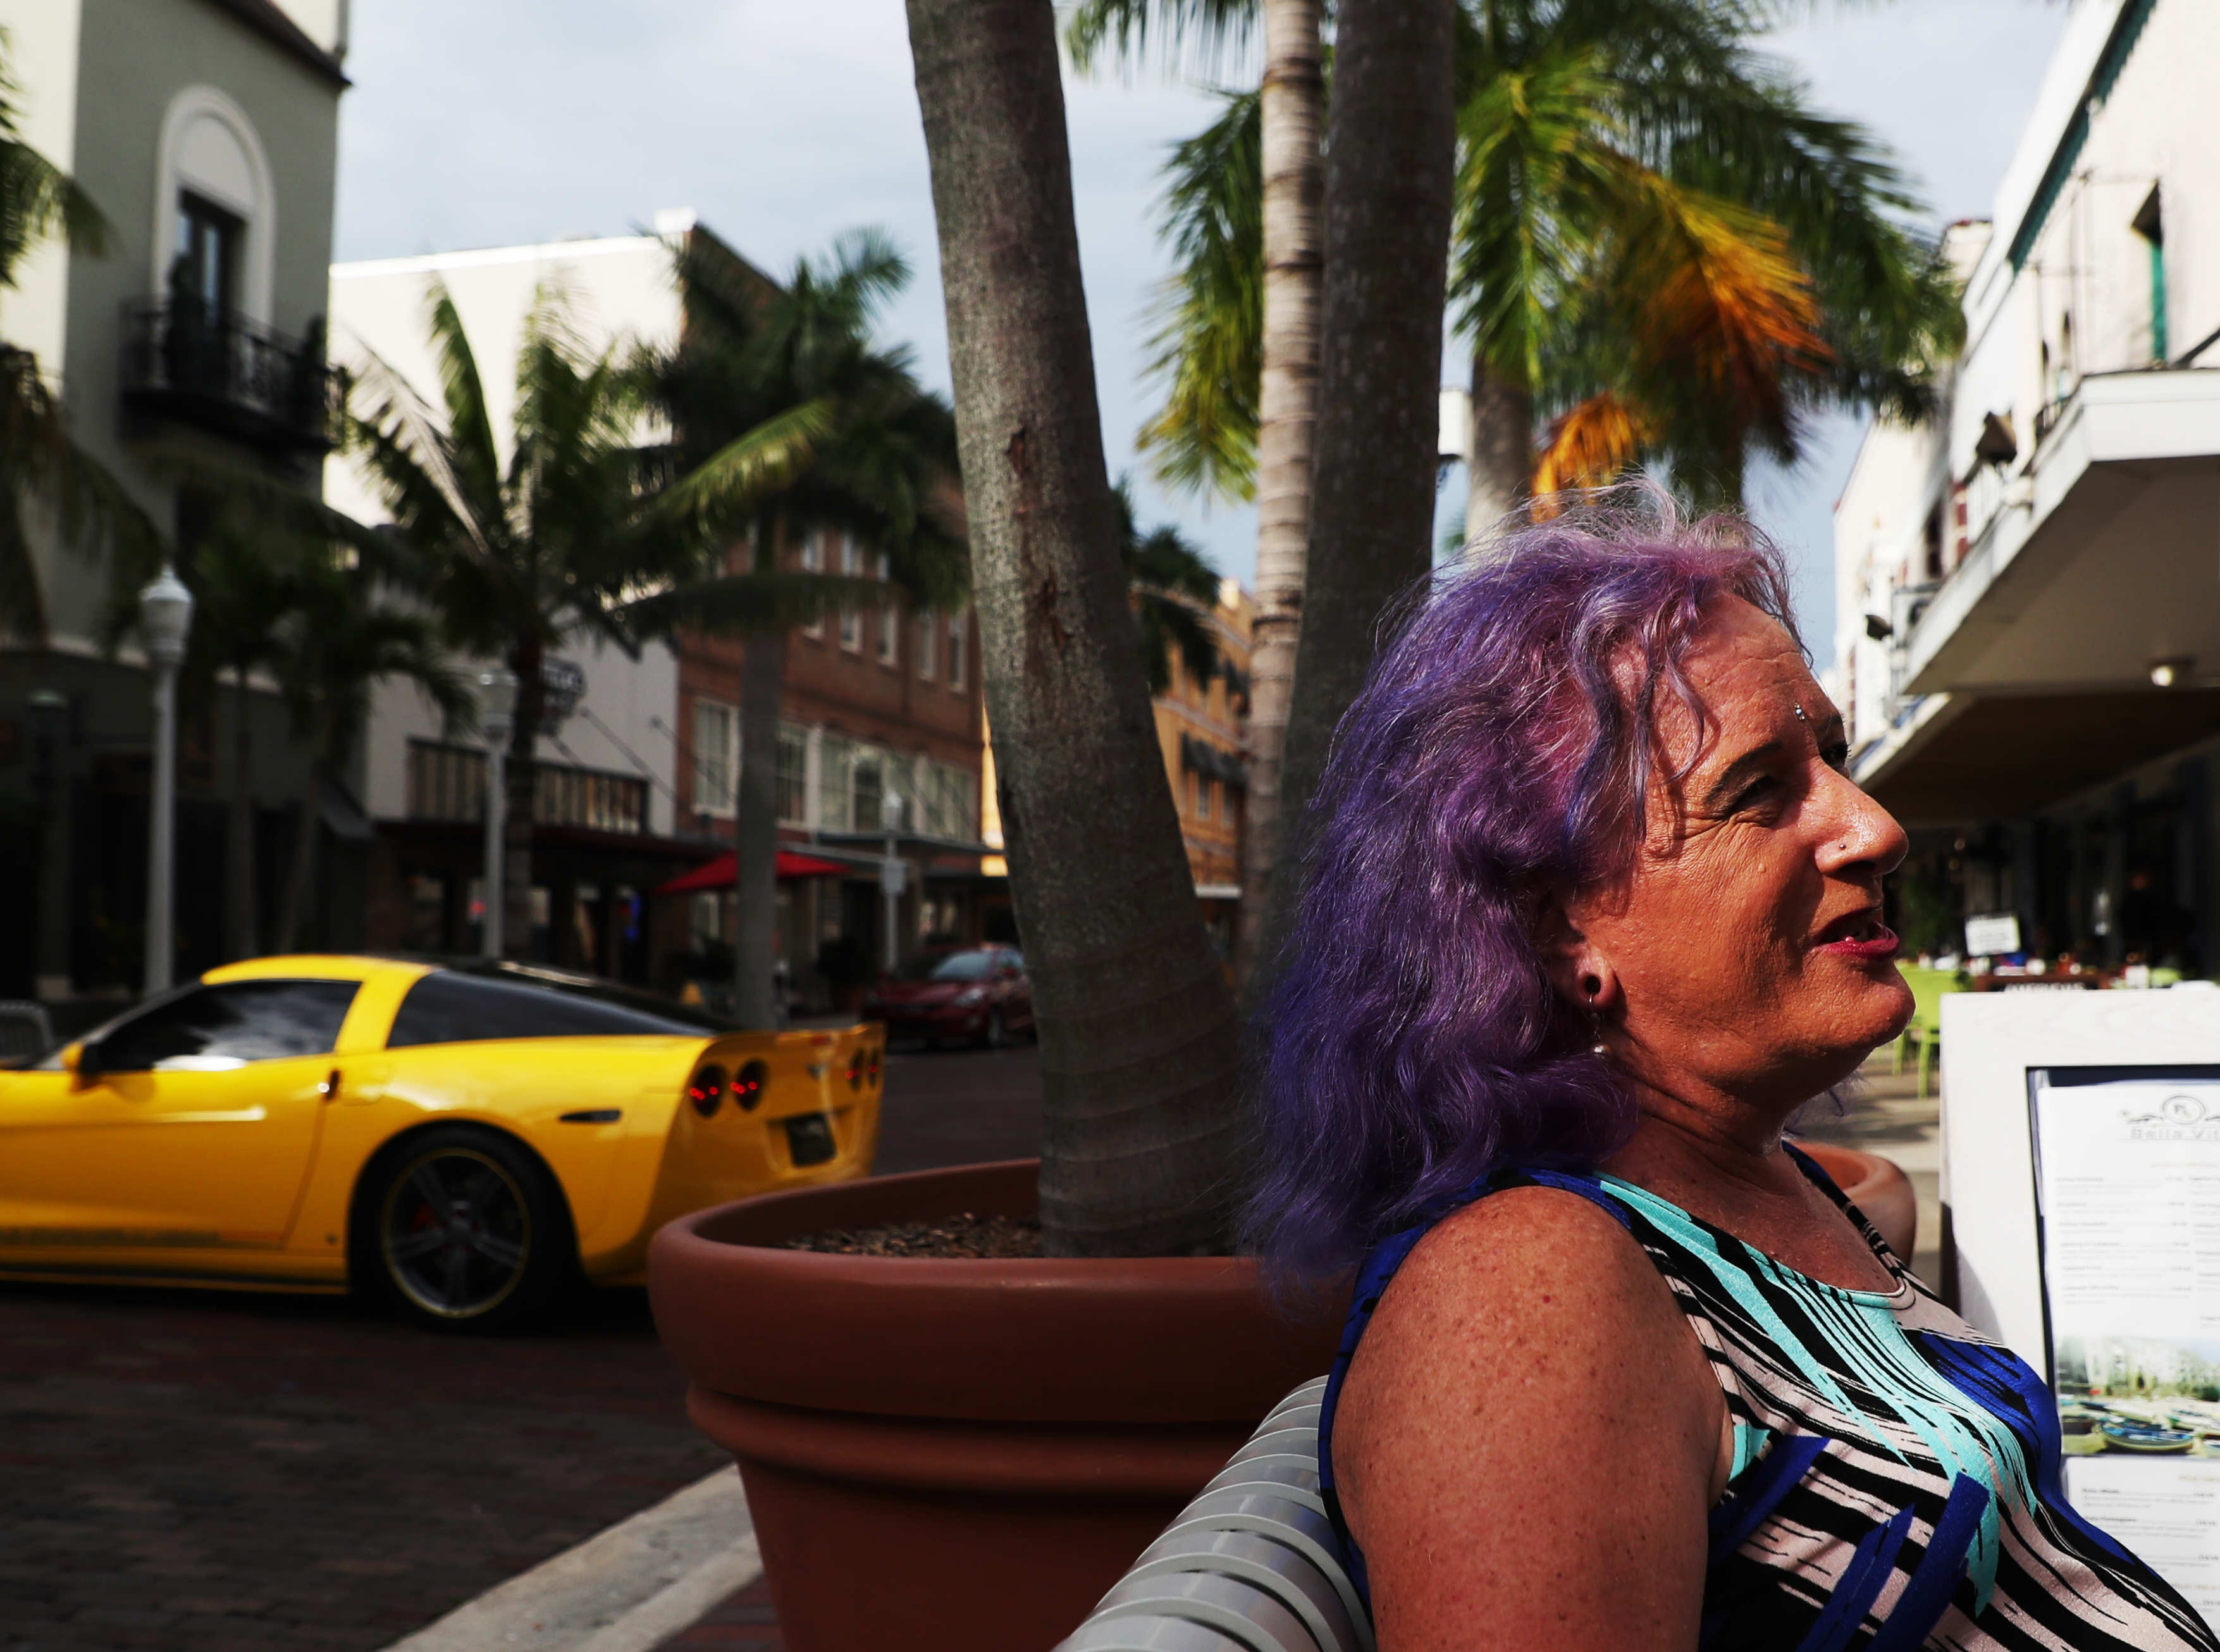 Jenna Satterfield, 62, takes time out from window shopping  in downtown Fort Myers recently. A child of 1960's from New Jersey who always identified with female things Satterfield says transgender women of her generation could be beaten or killed. For this reason she waited until the 1990's to come out.